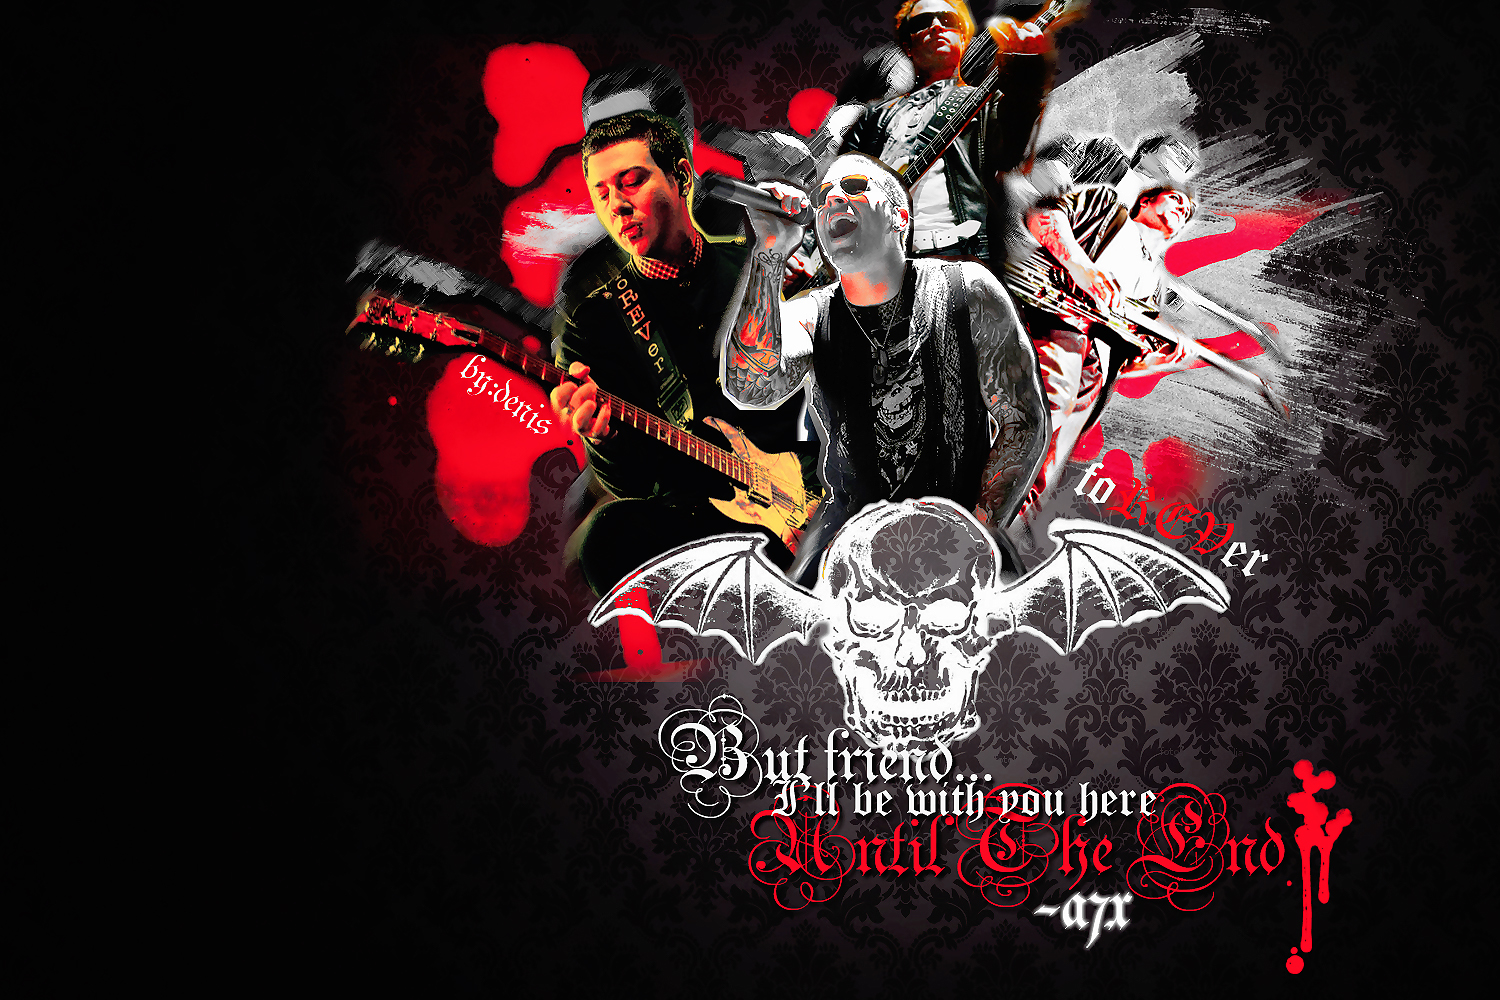 wallpapers hd for mac avenged sevenfold wallpaper high